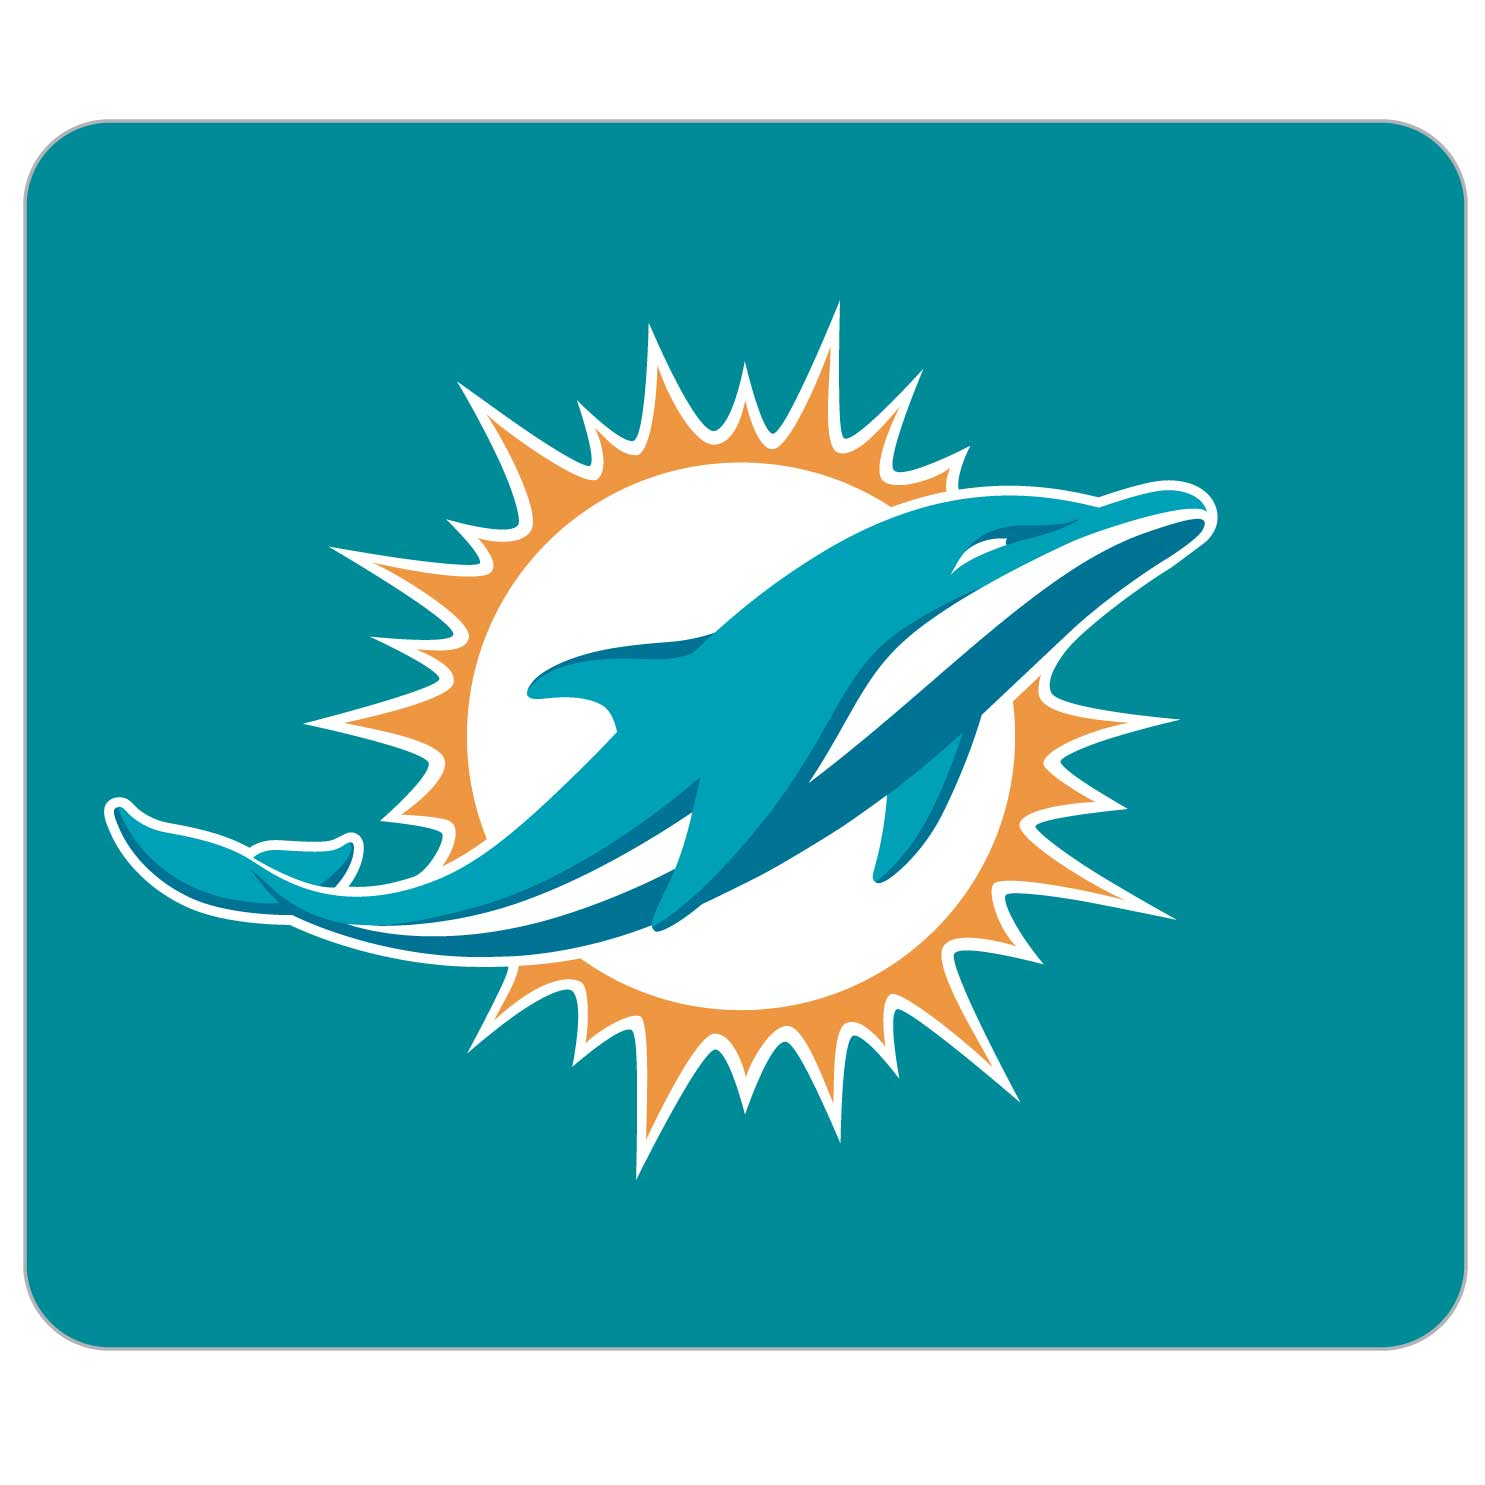 "NFL Mouse Pad - Miami Dolphins - Our quality NFL mouse pad features a silk screened Miami Dolphins logo. 8"" x 7"" Officially licensed NFL product Licensee: Siskiyou Buckle Thank you for visiting CrazedOutSports.com"